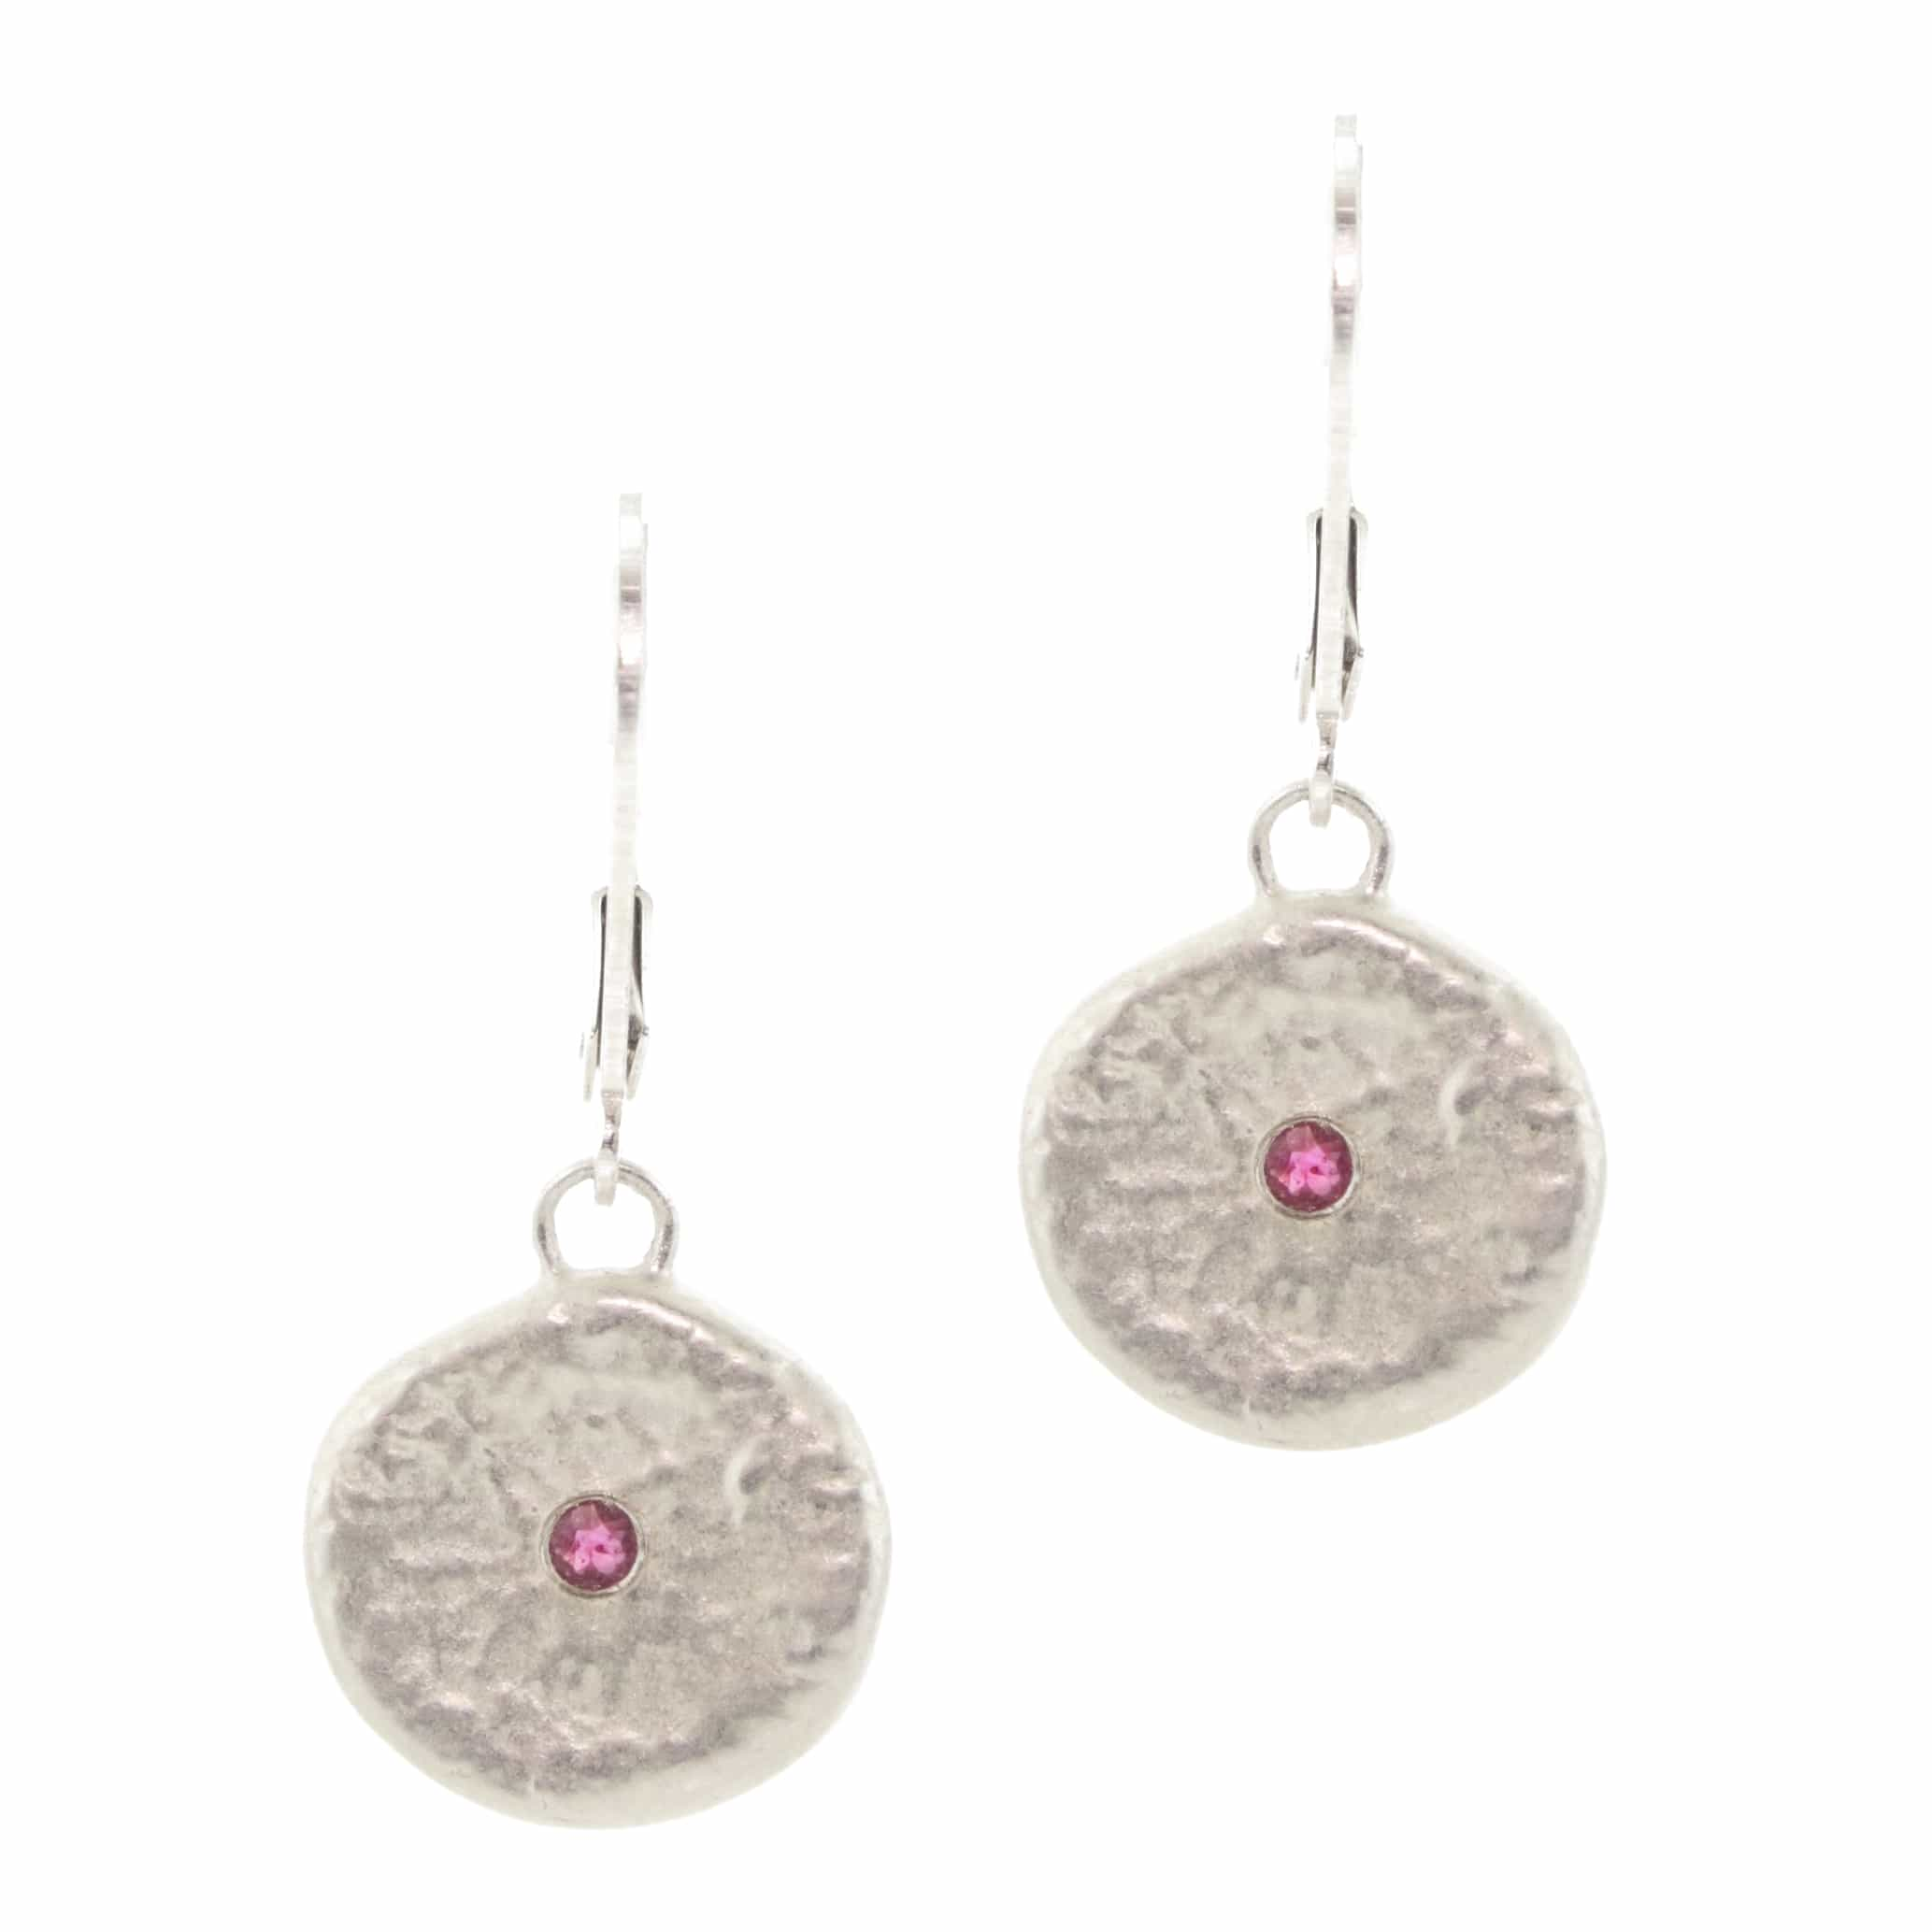 Chefridi Earrings SE183-2